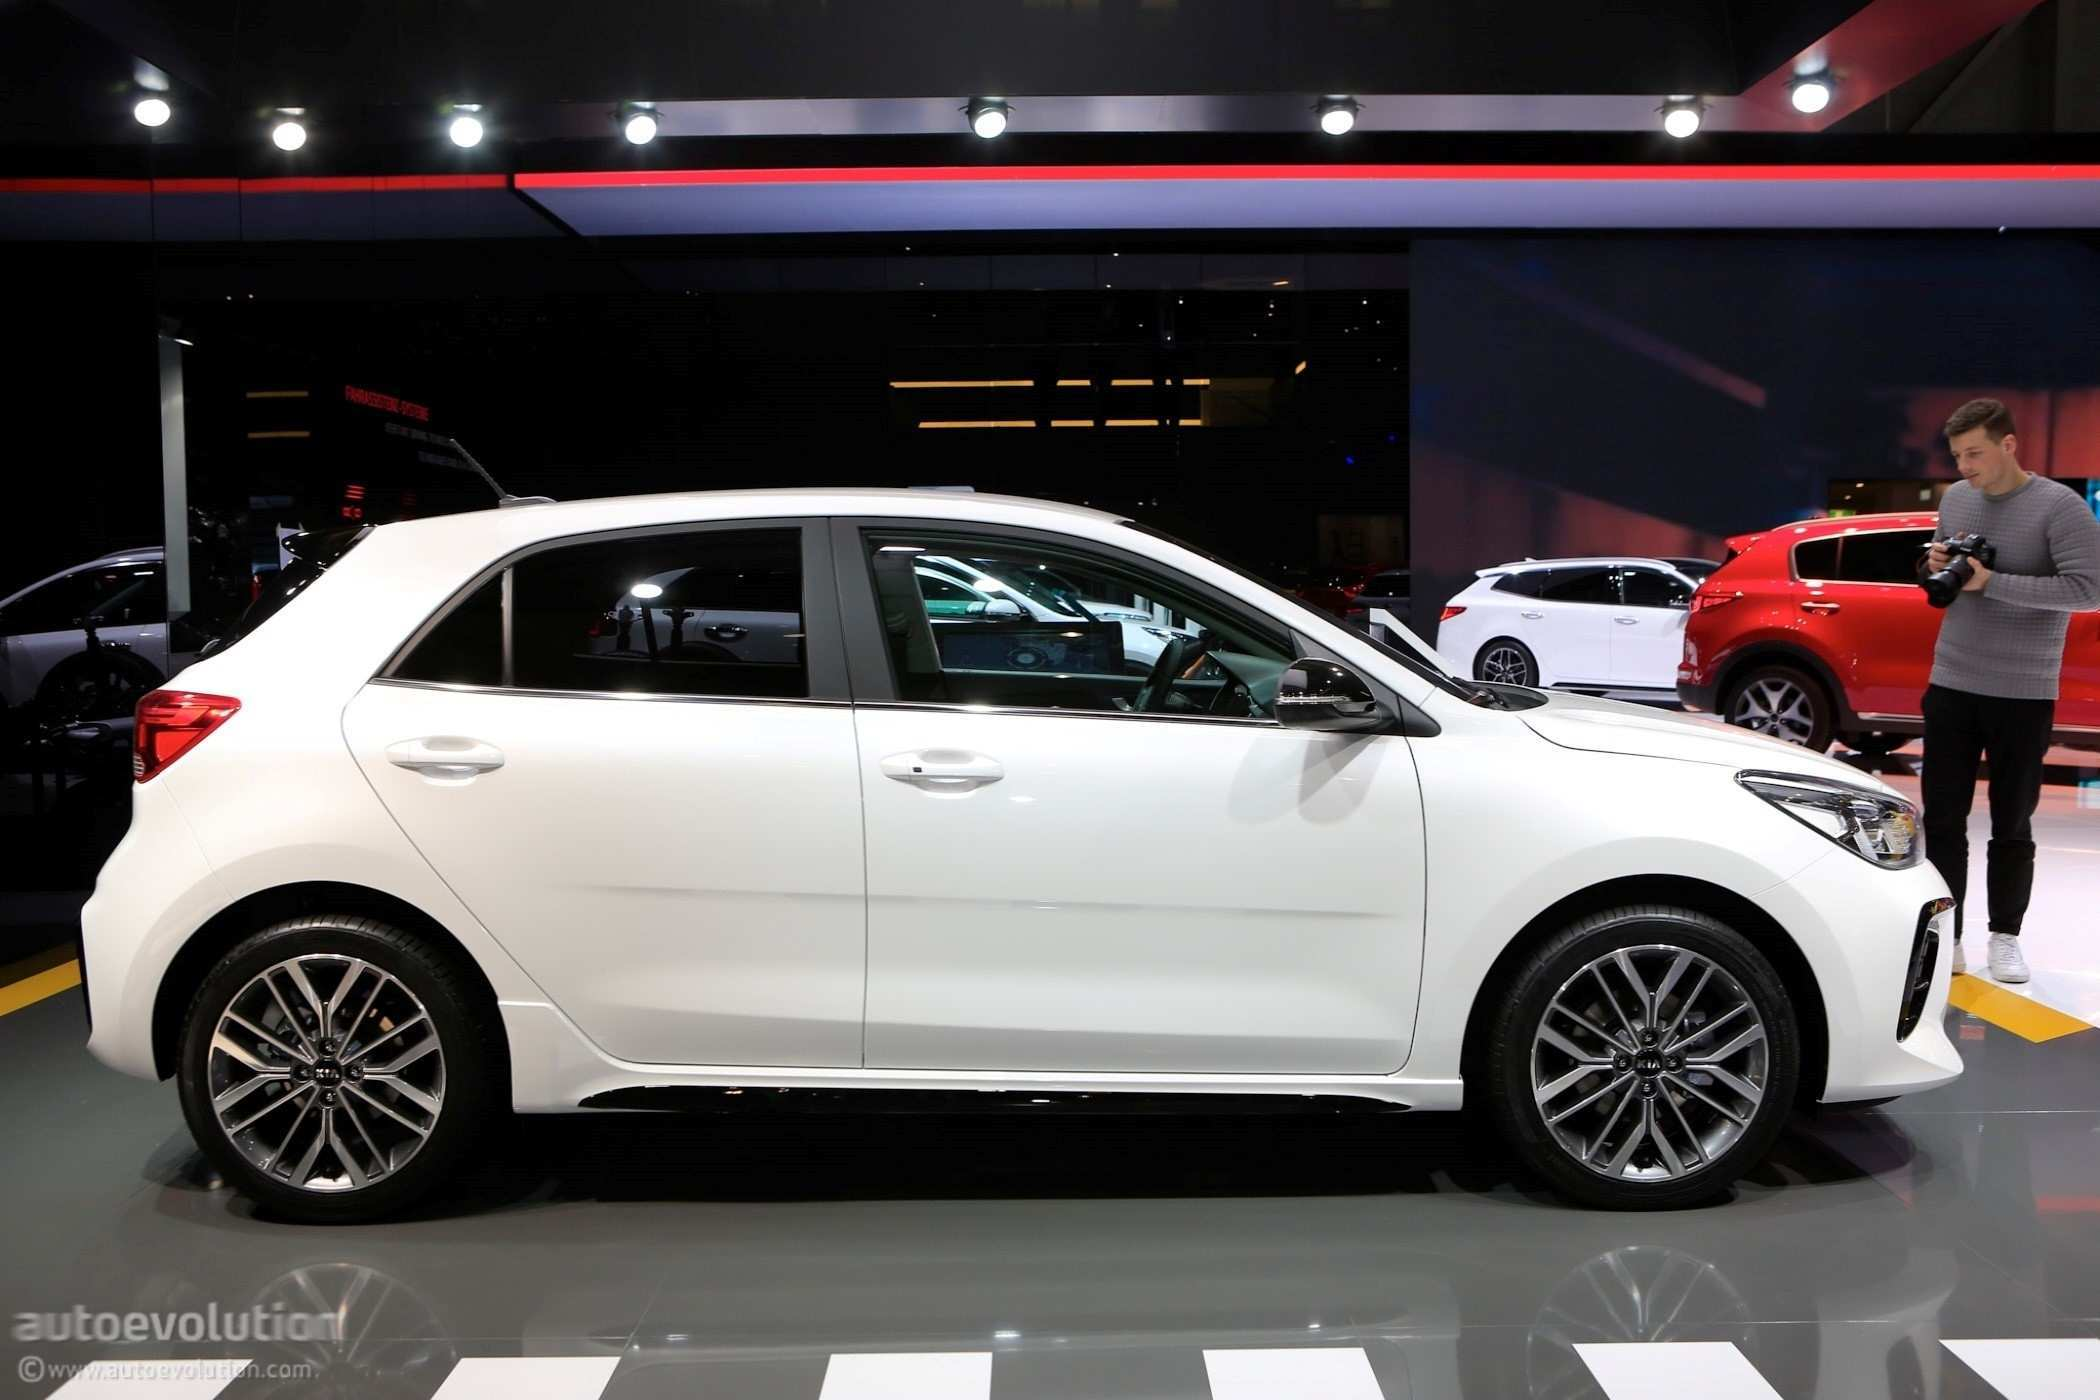 67 The Best 2020 Kia Rio New Review